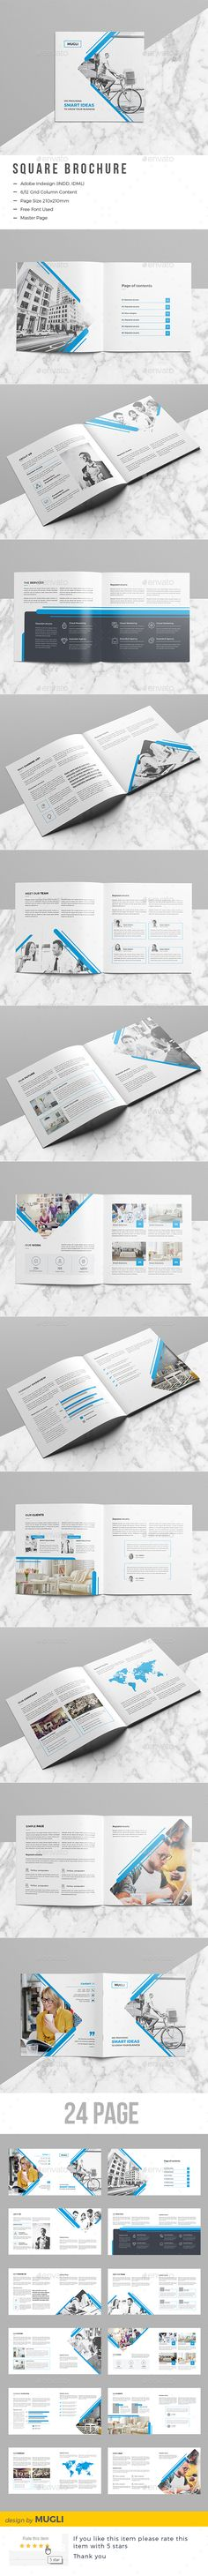 Square Brochure — InDesign INDD #square #creative • Download ➝ https://graphicriver.net/item/square-brochure/19568308?ref=pxcr